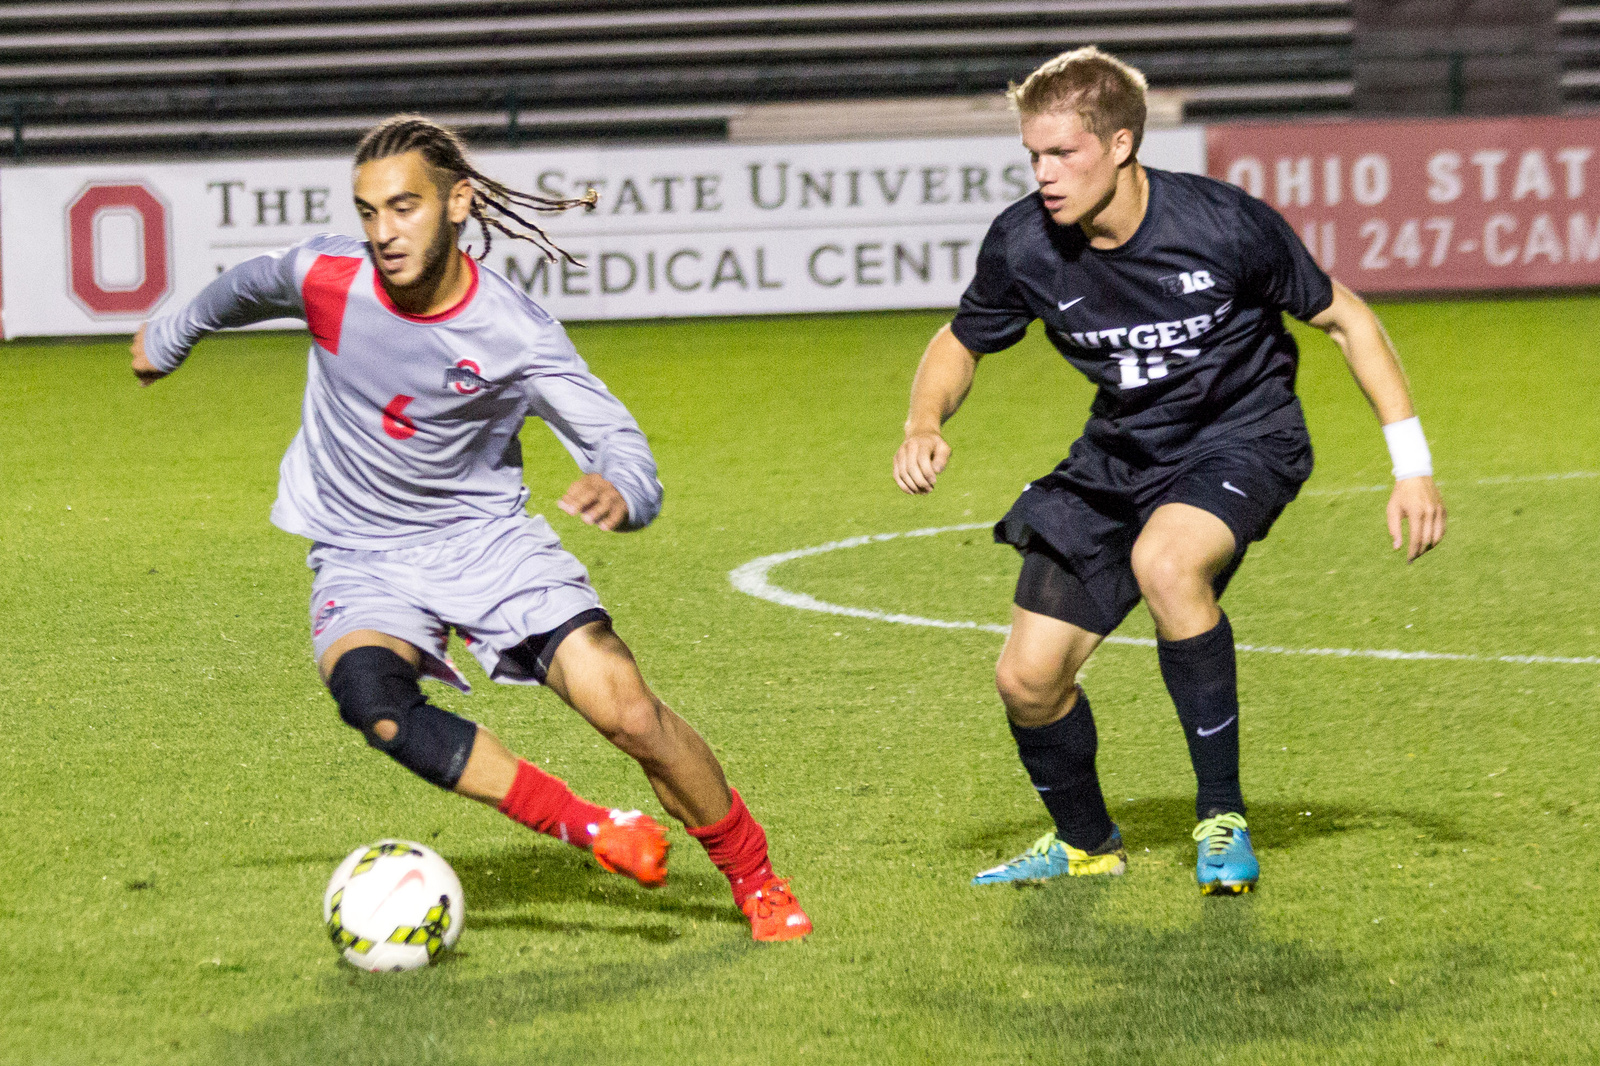 Senior midfielder Yianni Sarris avoids defenders during a game against Rutgers Oct. 25 at Jesse Owens Memorial Stadium. OSU won, 4-1. Credit: Ed Momot / For The Lantern